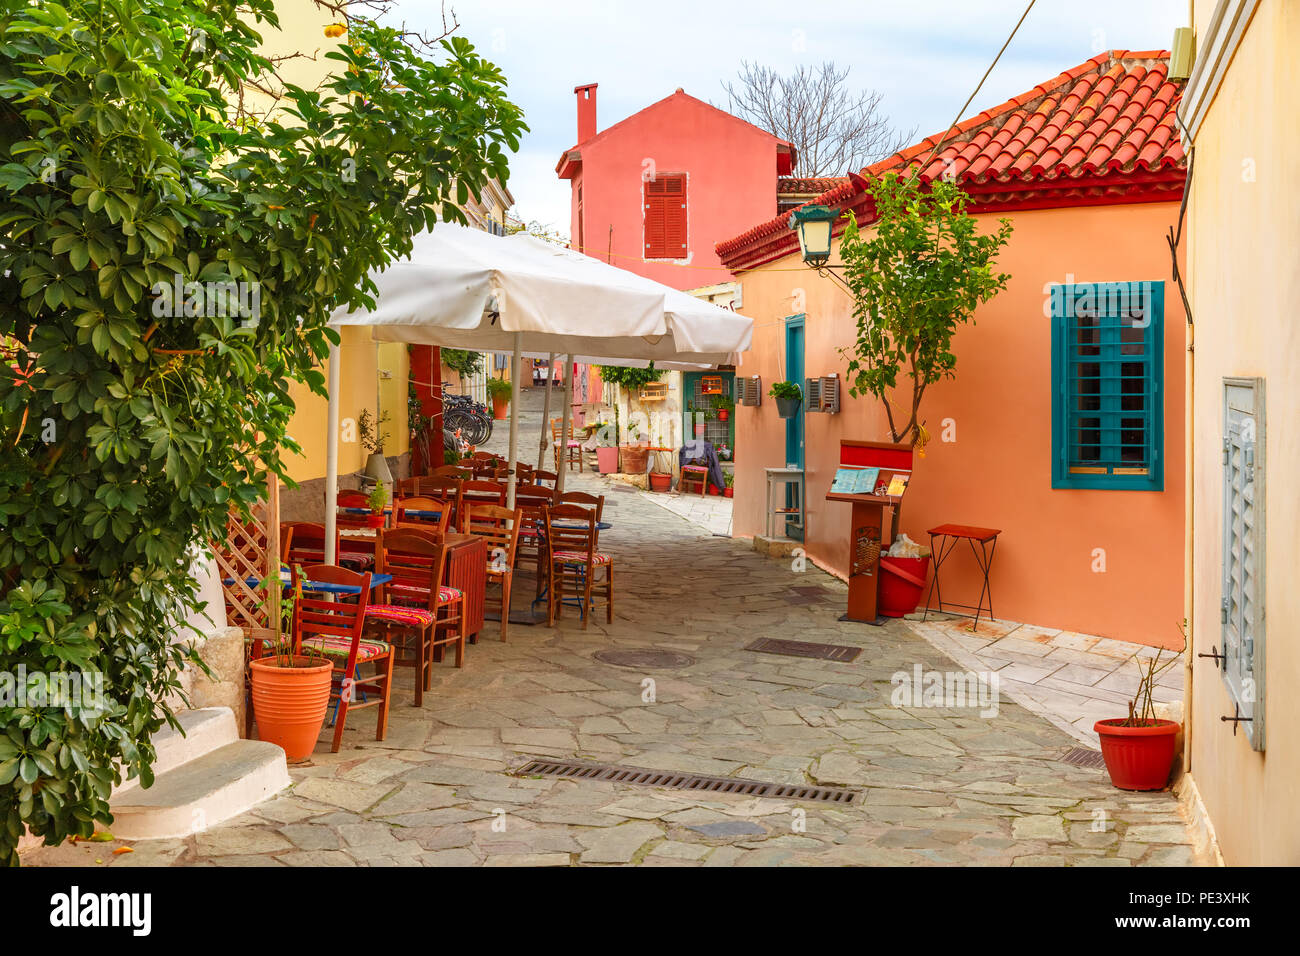 Famous Placa district in Athens, Greece - Stock Image